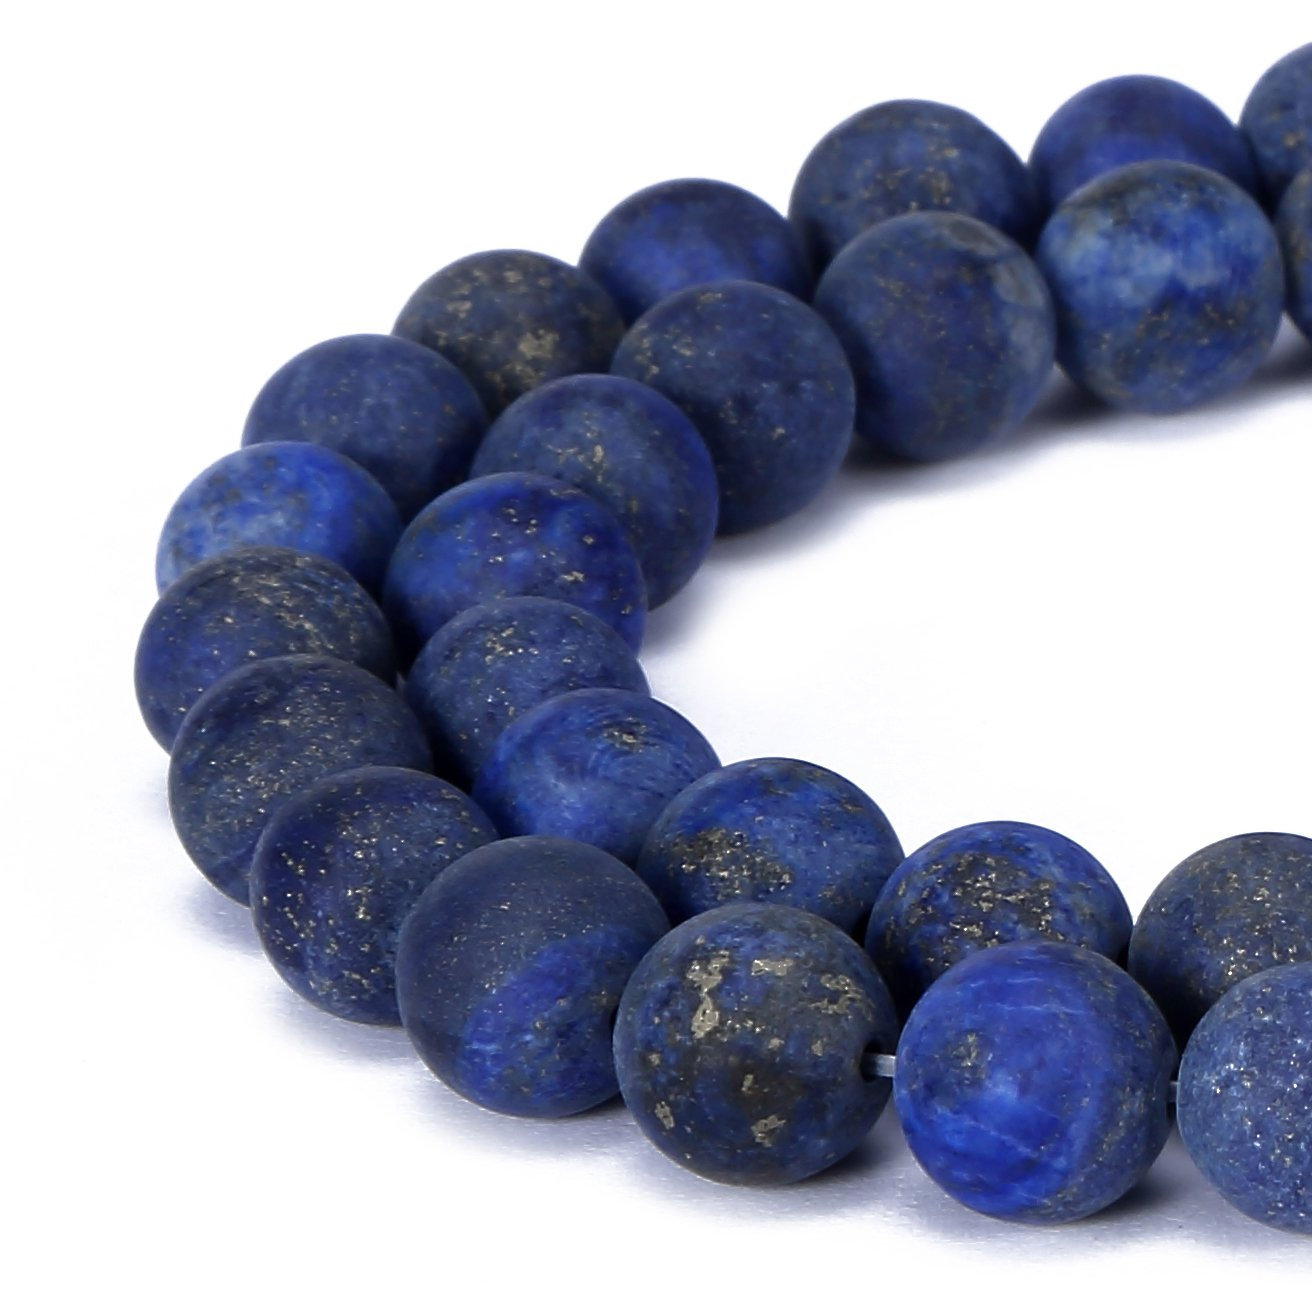 BRCbeads lapis lazuli Natural Gemstone Loose Beads 10mm Matte Round Crystal Energy Stone Healing Power for Jewelry Making- Blue